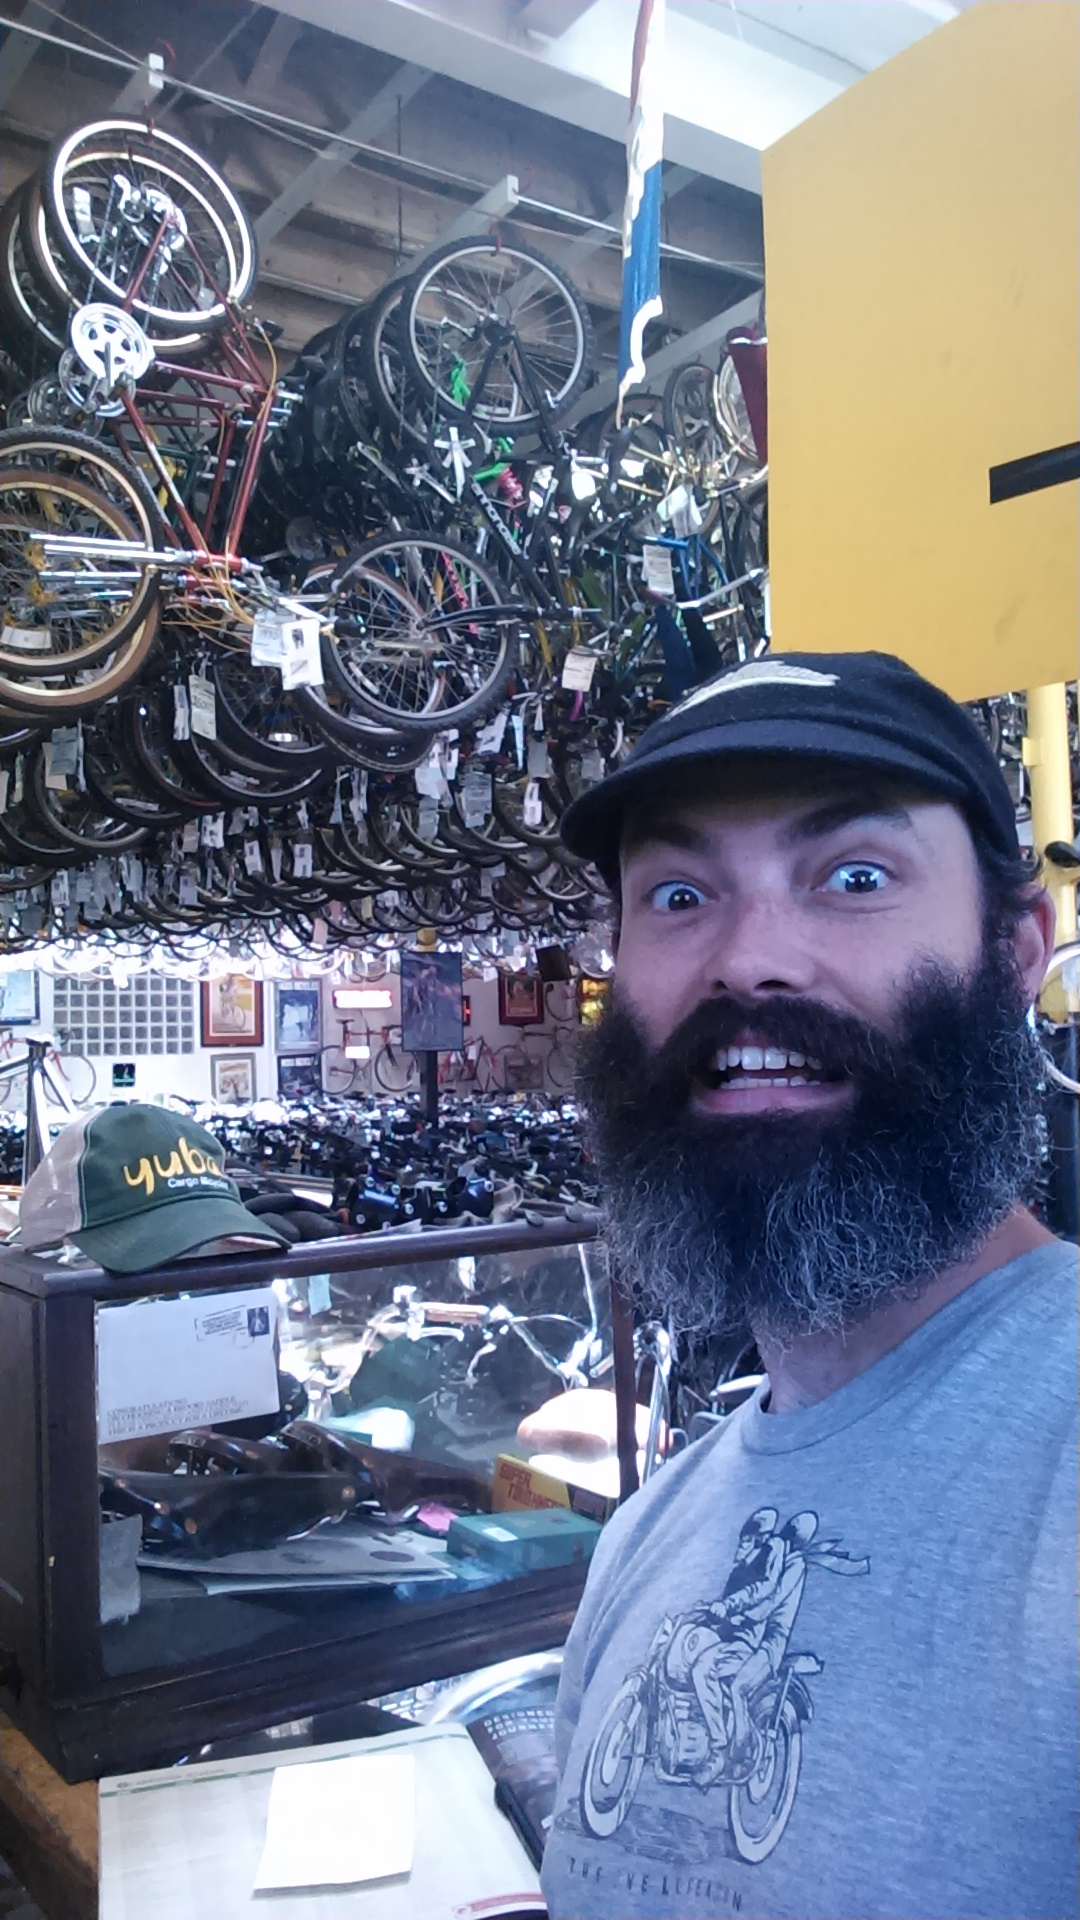 Adam at Home in the Bike Shop